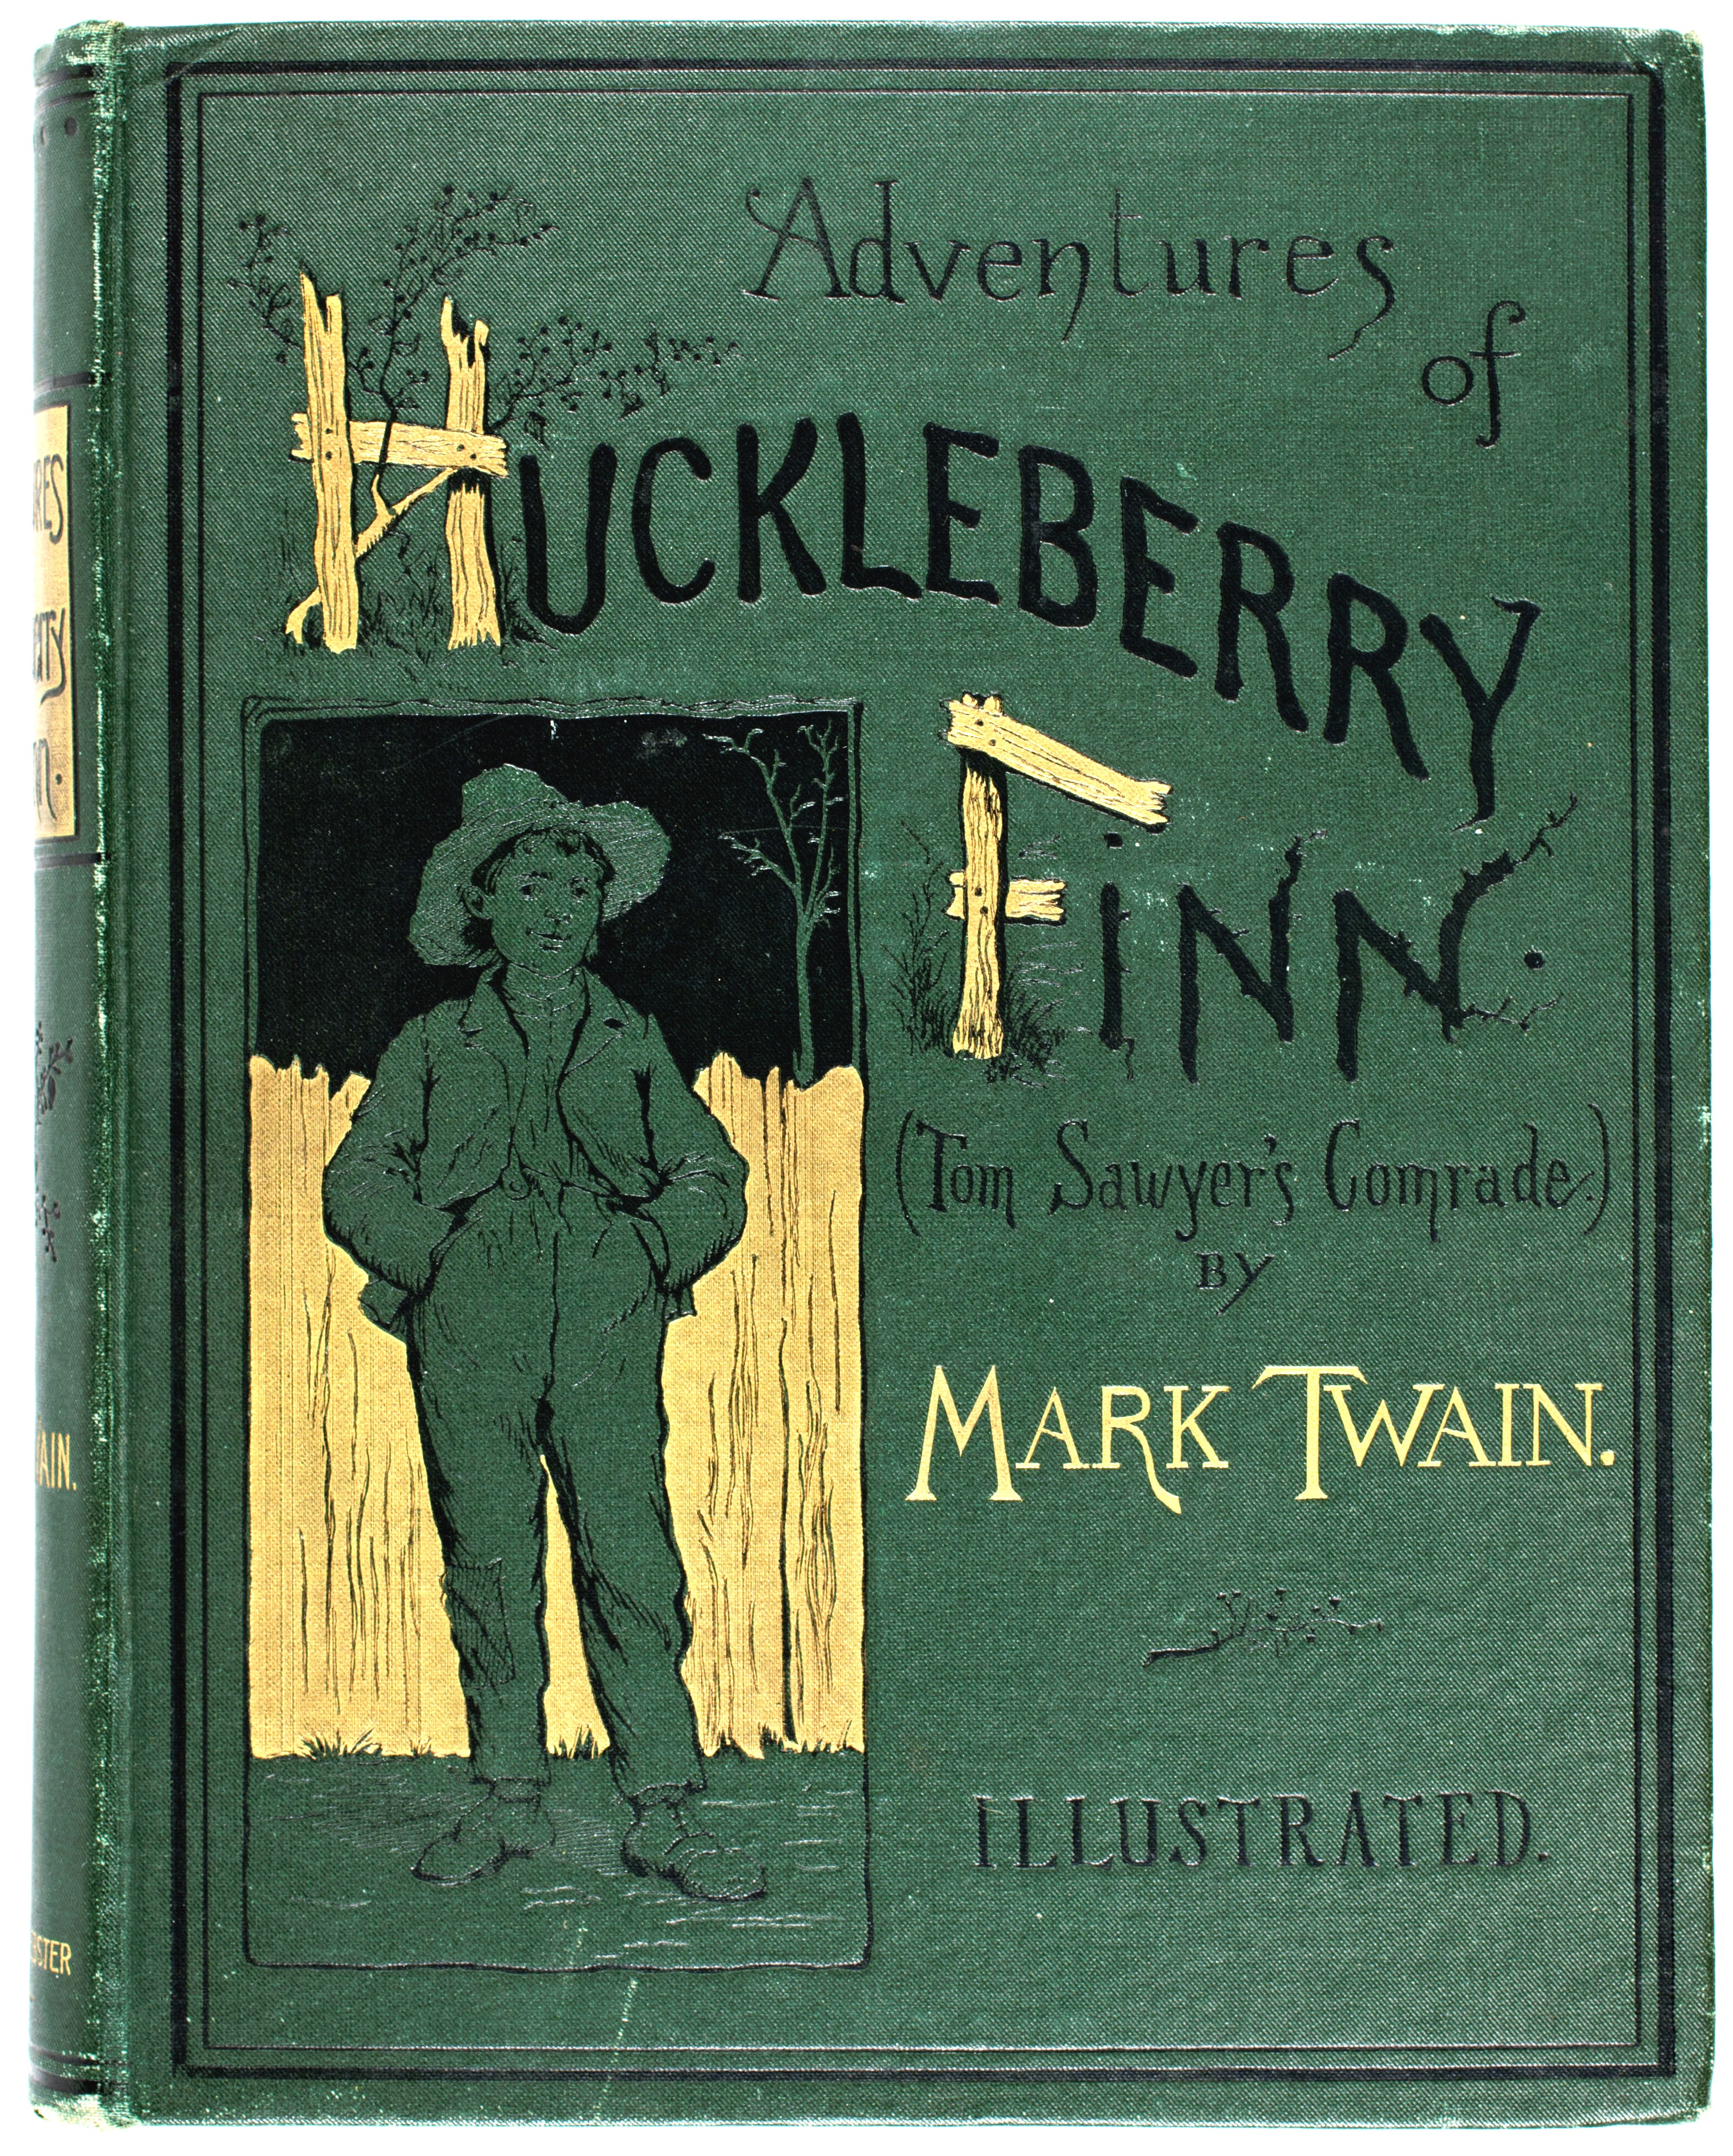 an overview of the adventures of huckleberry finn The adventures of huckleberry finn (tom sawyer's comrade)by mark twain a gl assbook cl assic.